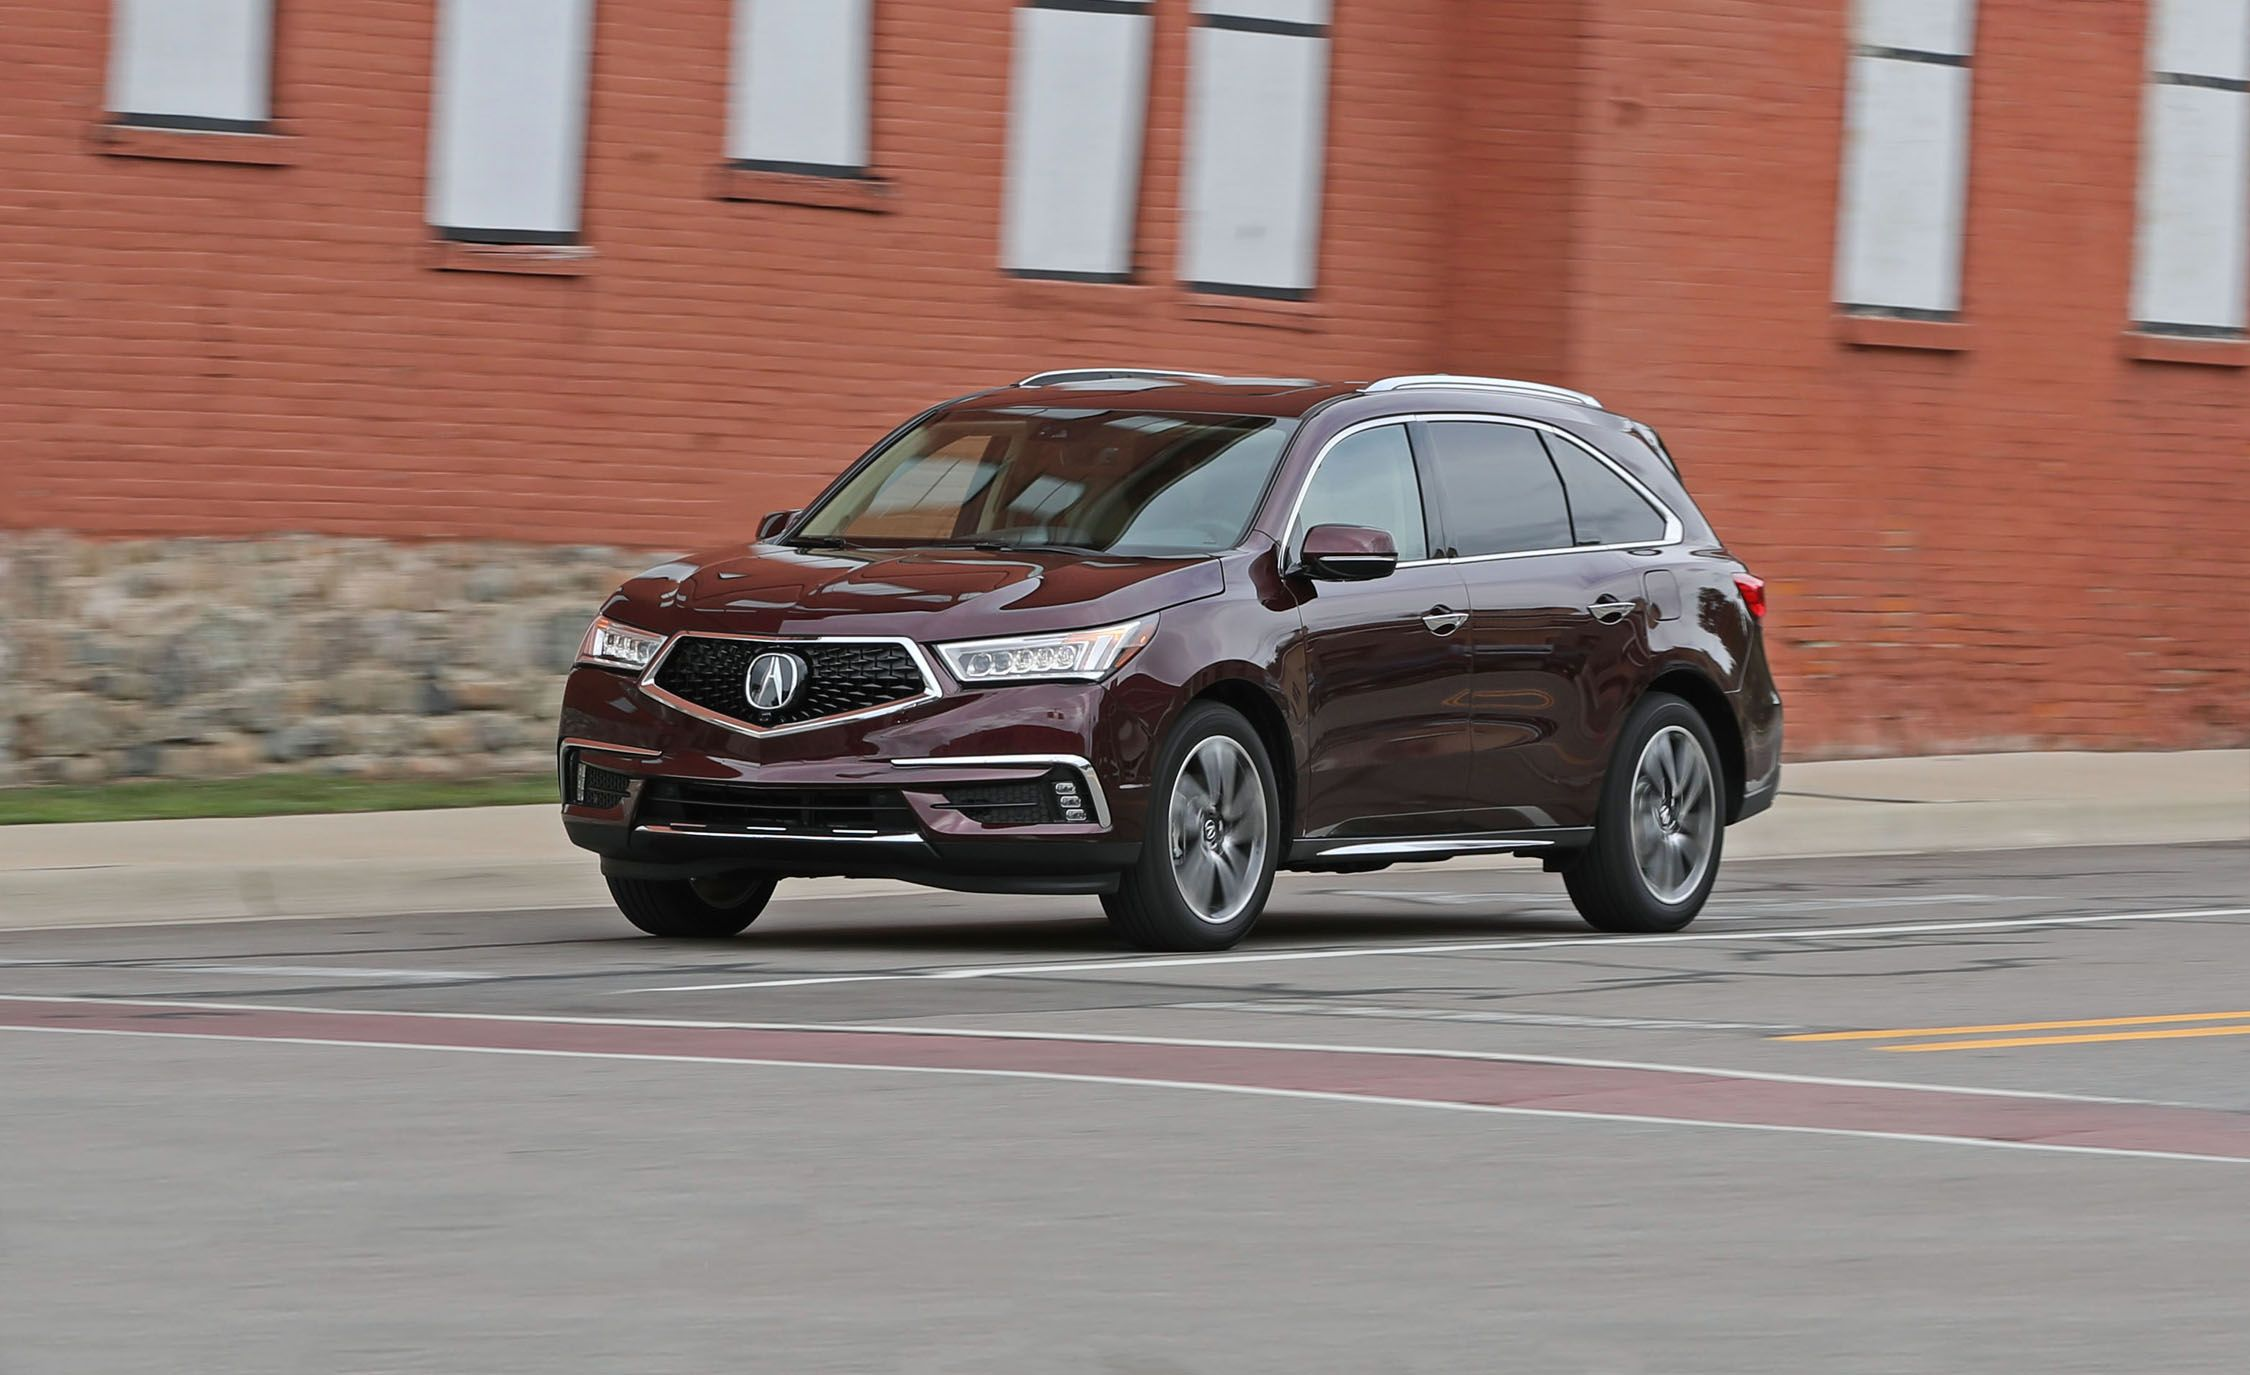 Acura MDX Reviews | Acura MDX Price, Photos, and Specs | Car and Driver